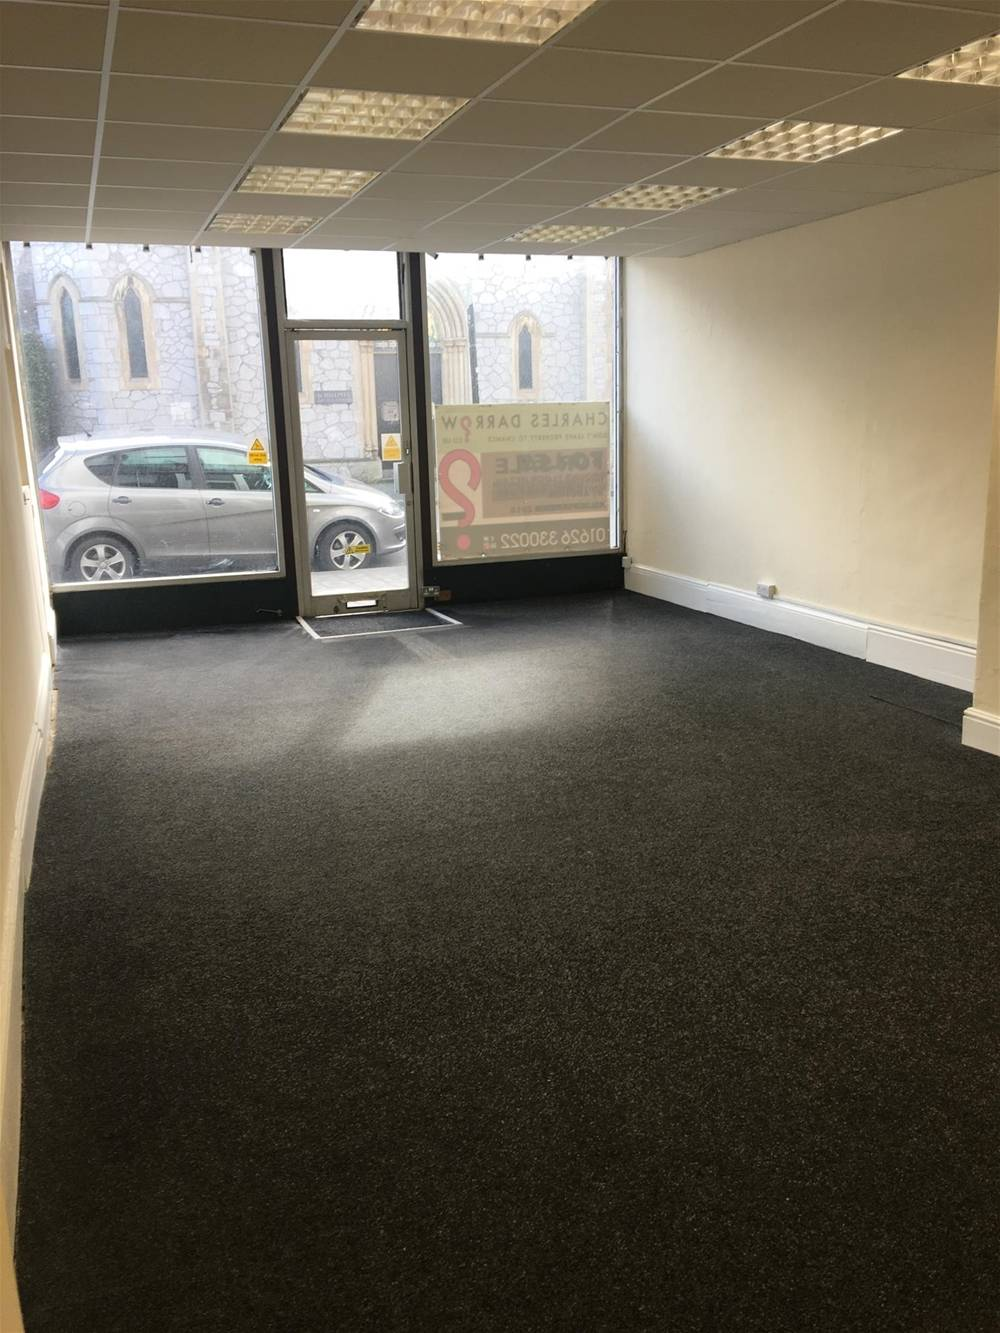 Town Centre Retail Premises For Sale in Newton Abbot - Image 3